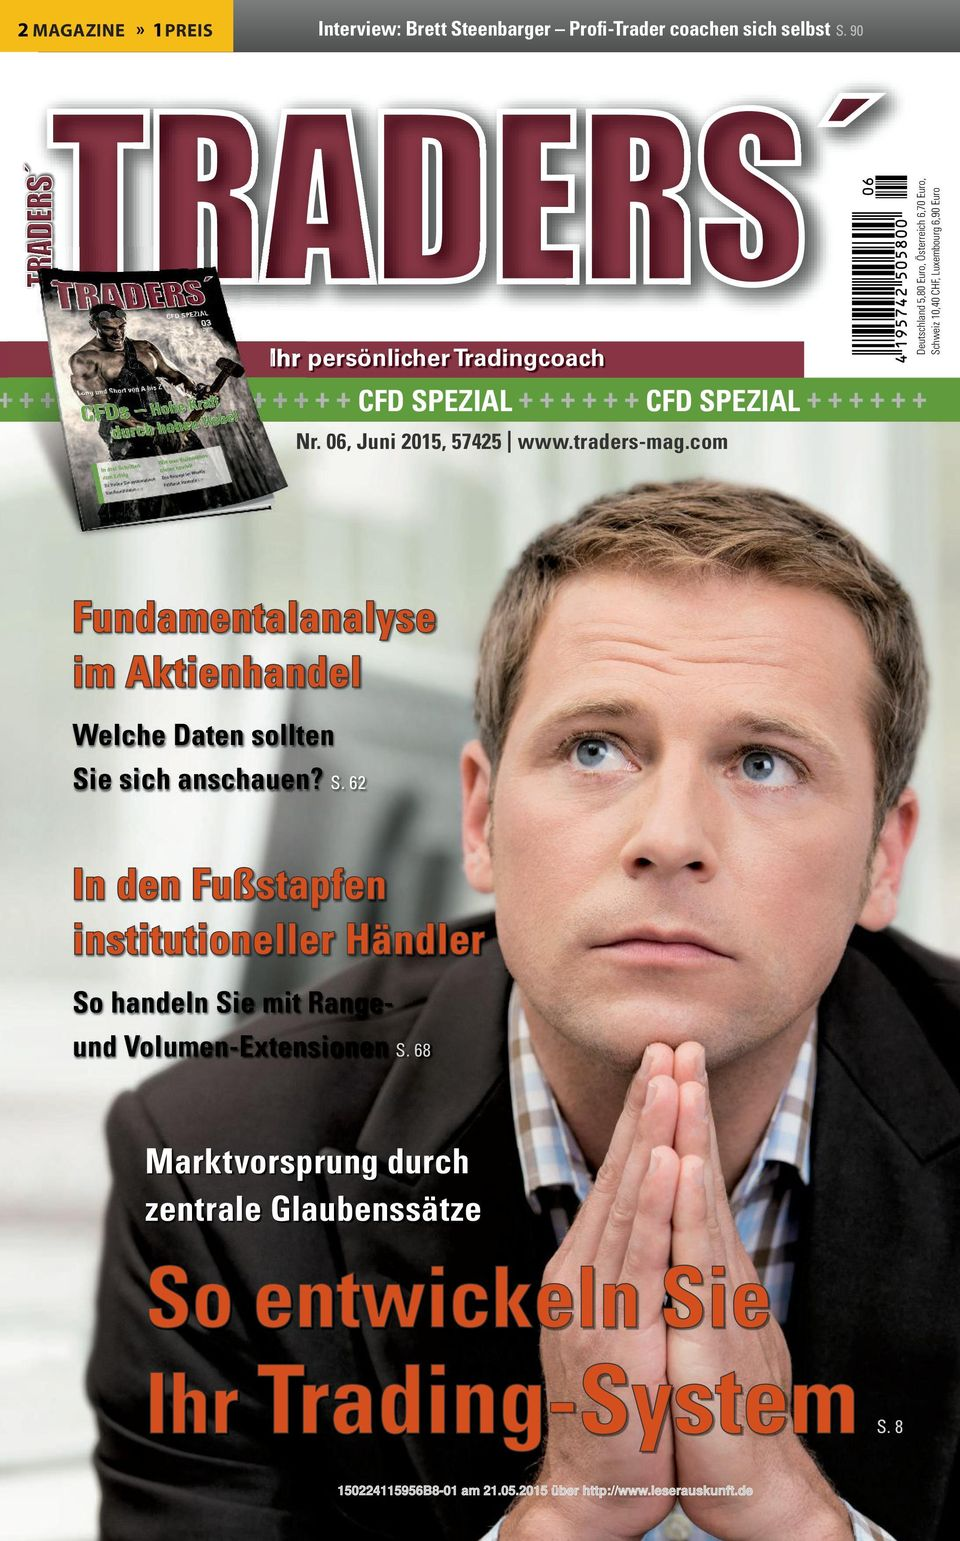 6,70 Euro, Schweiz 10,40 CHF, Luxembourg 6,90 Euro Nr. 06, Juni 2015, 57425 www.traders-mag.